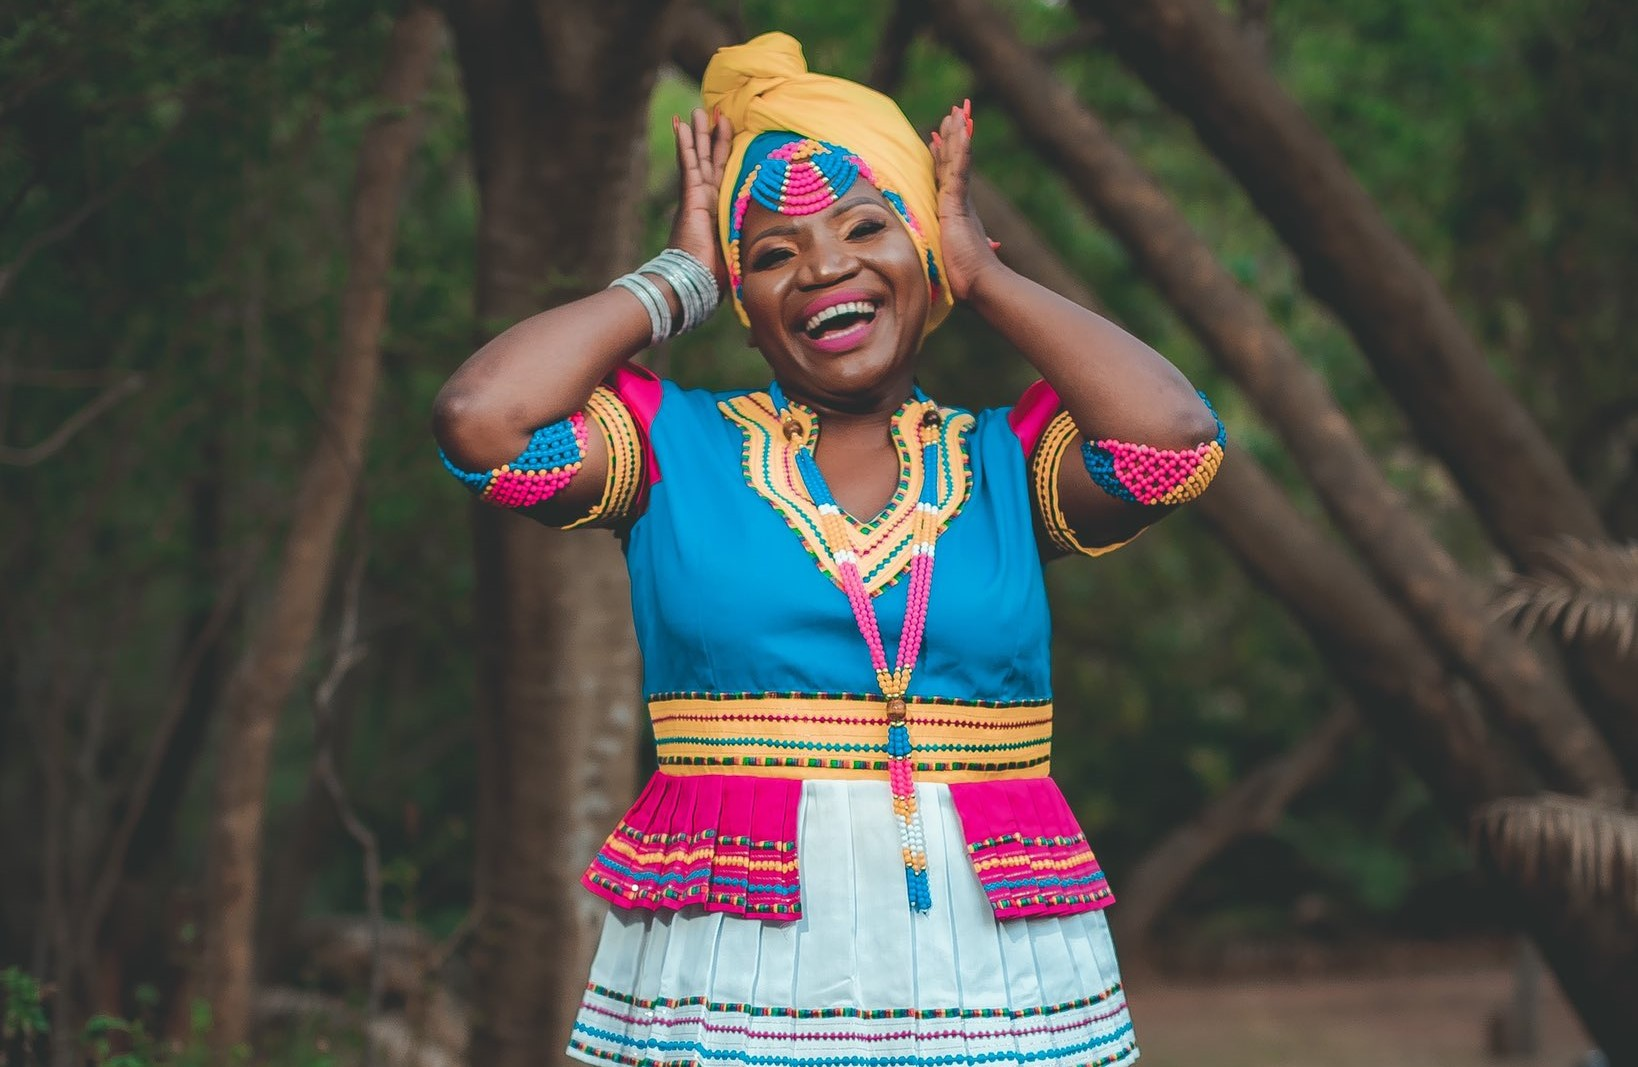 'My dream is to work with Beyoncé,' says Makhadzi as she opens up about her tough musical journey